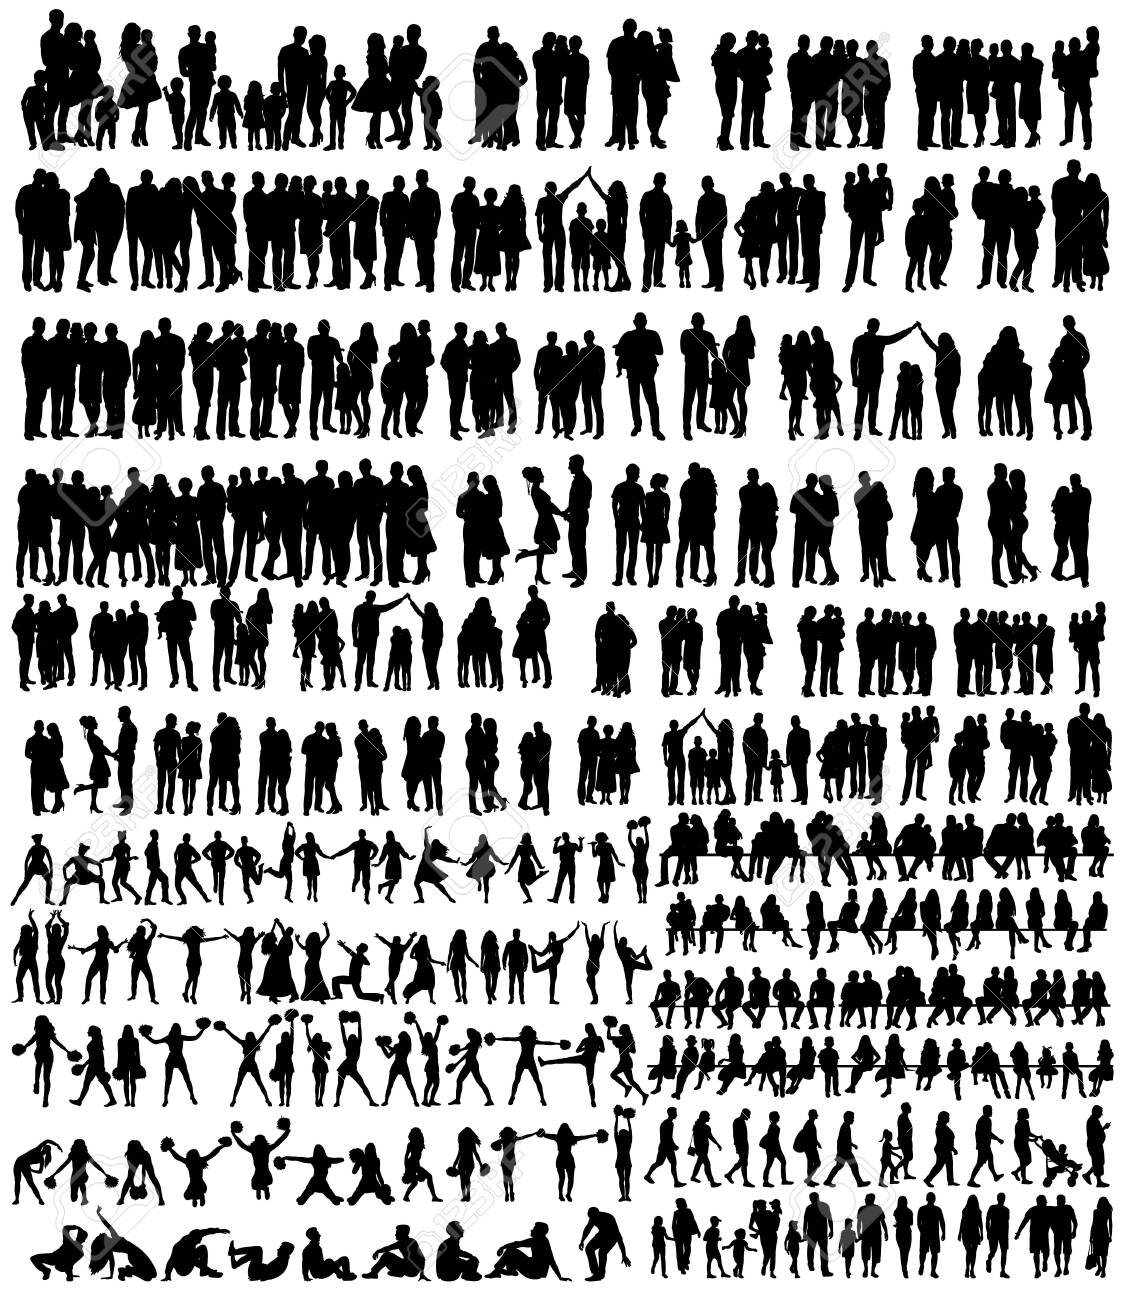 vector, isolated, people silhouettes set - 154193405